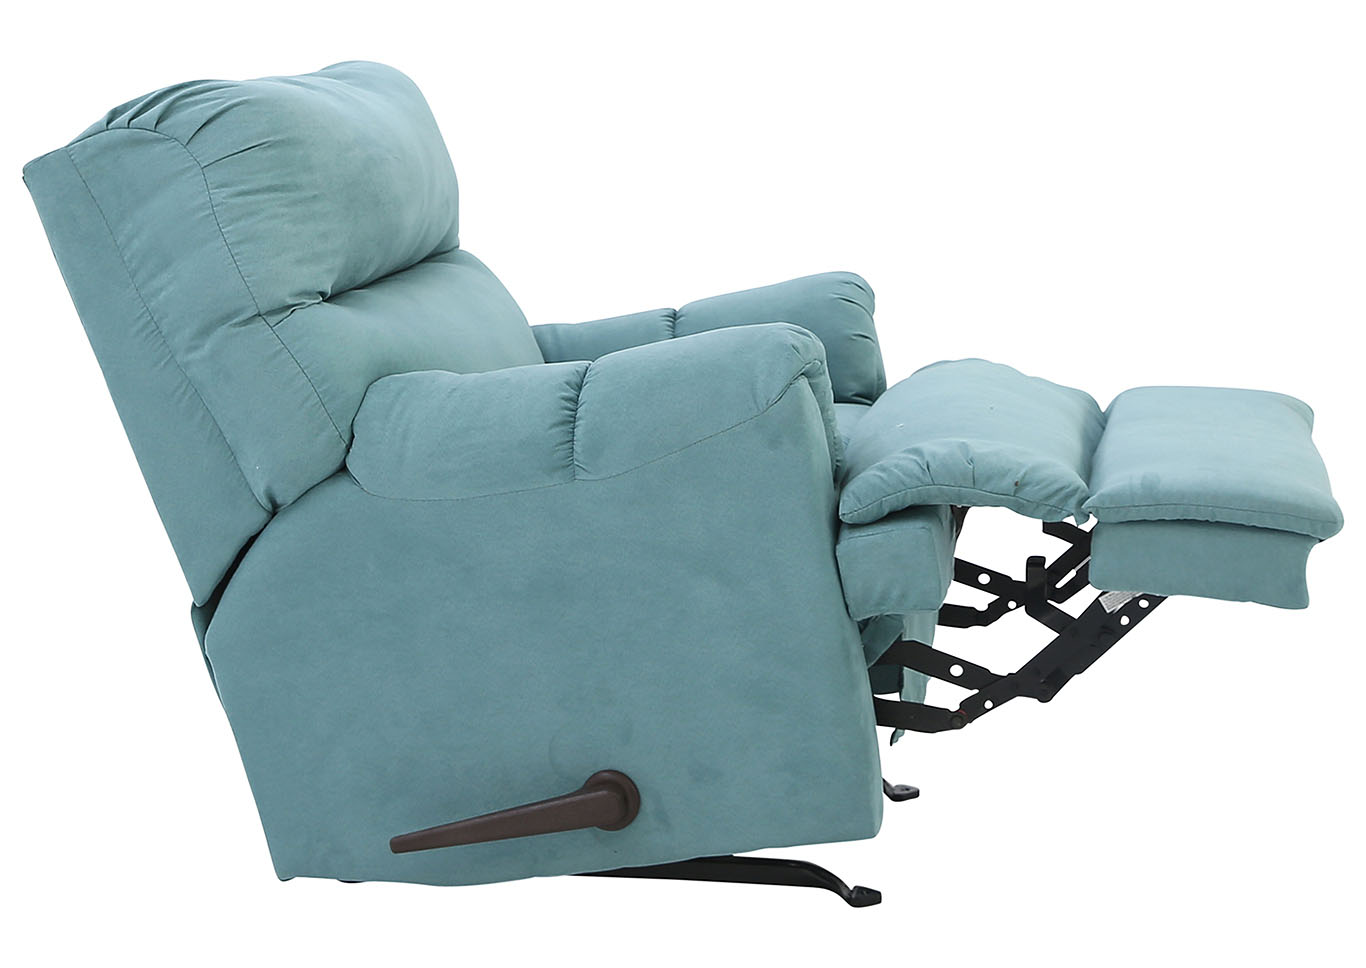 ANTHONY CAPRI RECLINER,AFFORDABLE FURNITURE